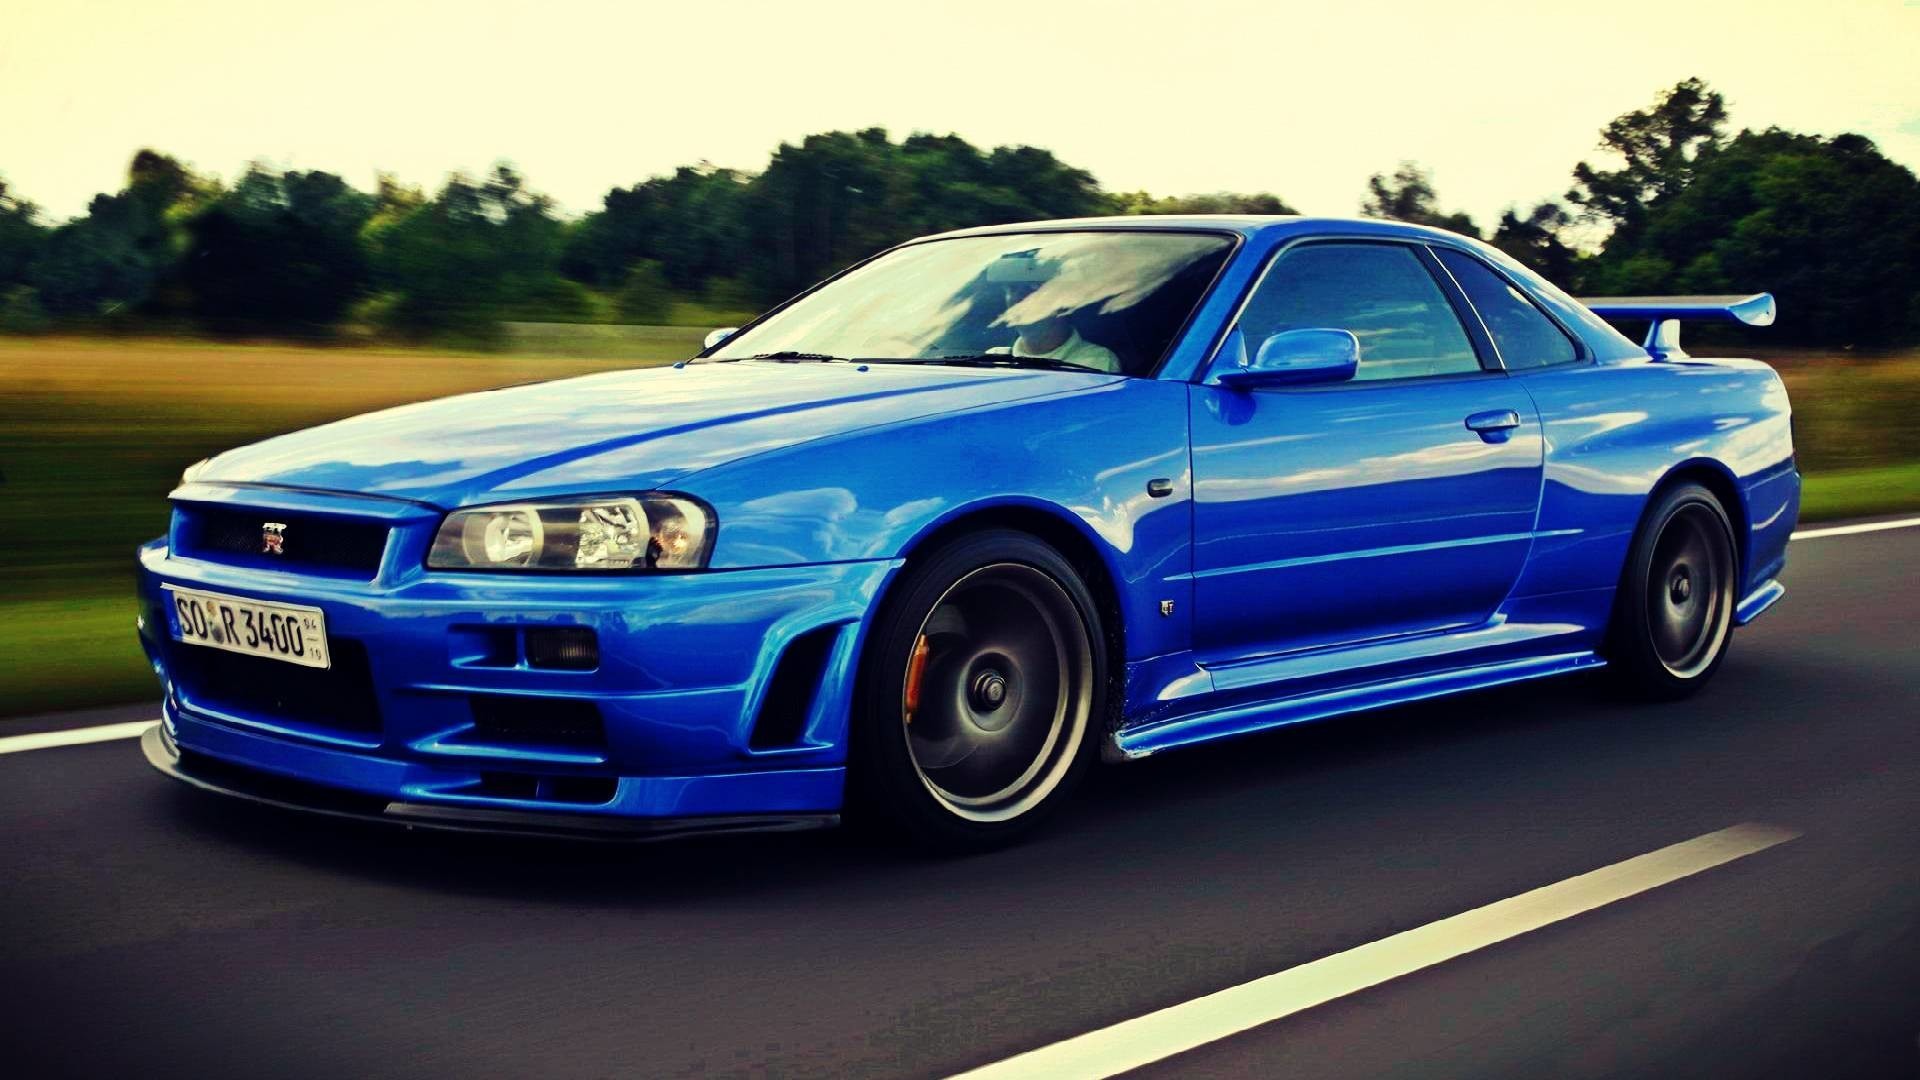 Nissan Skyline GTR R34 Wallpapers Group (89+)